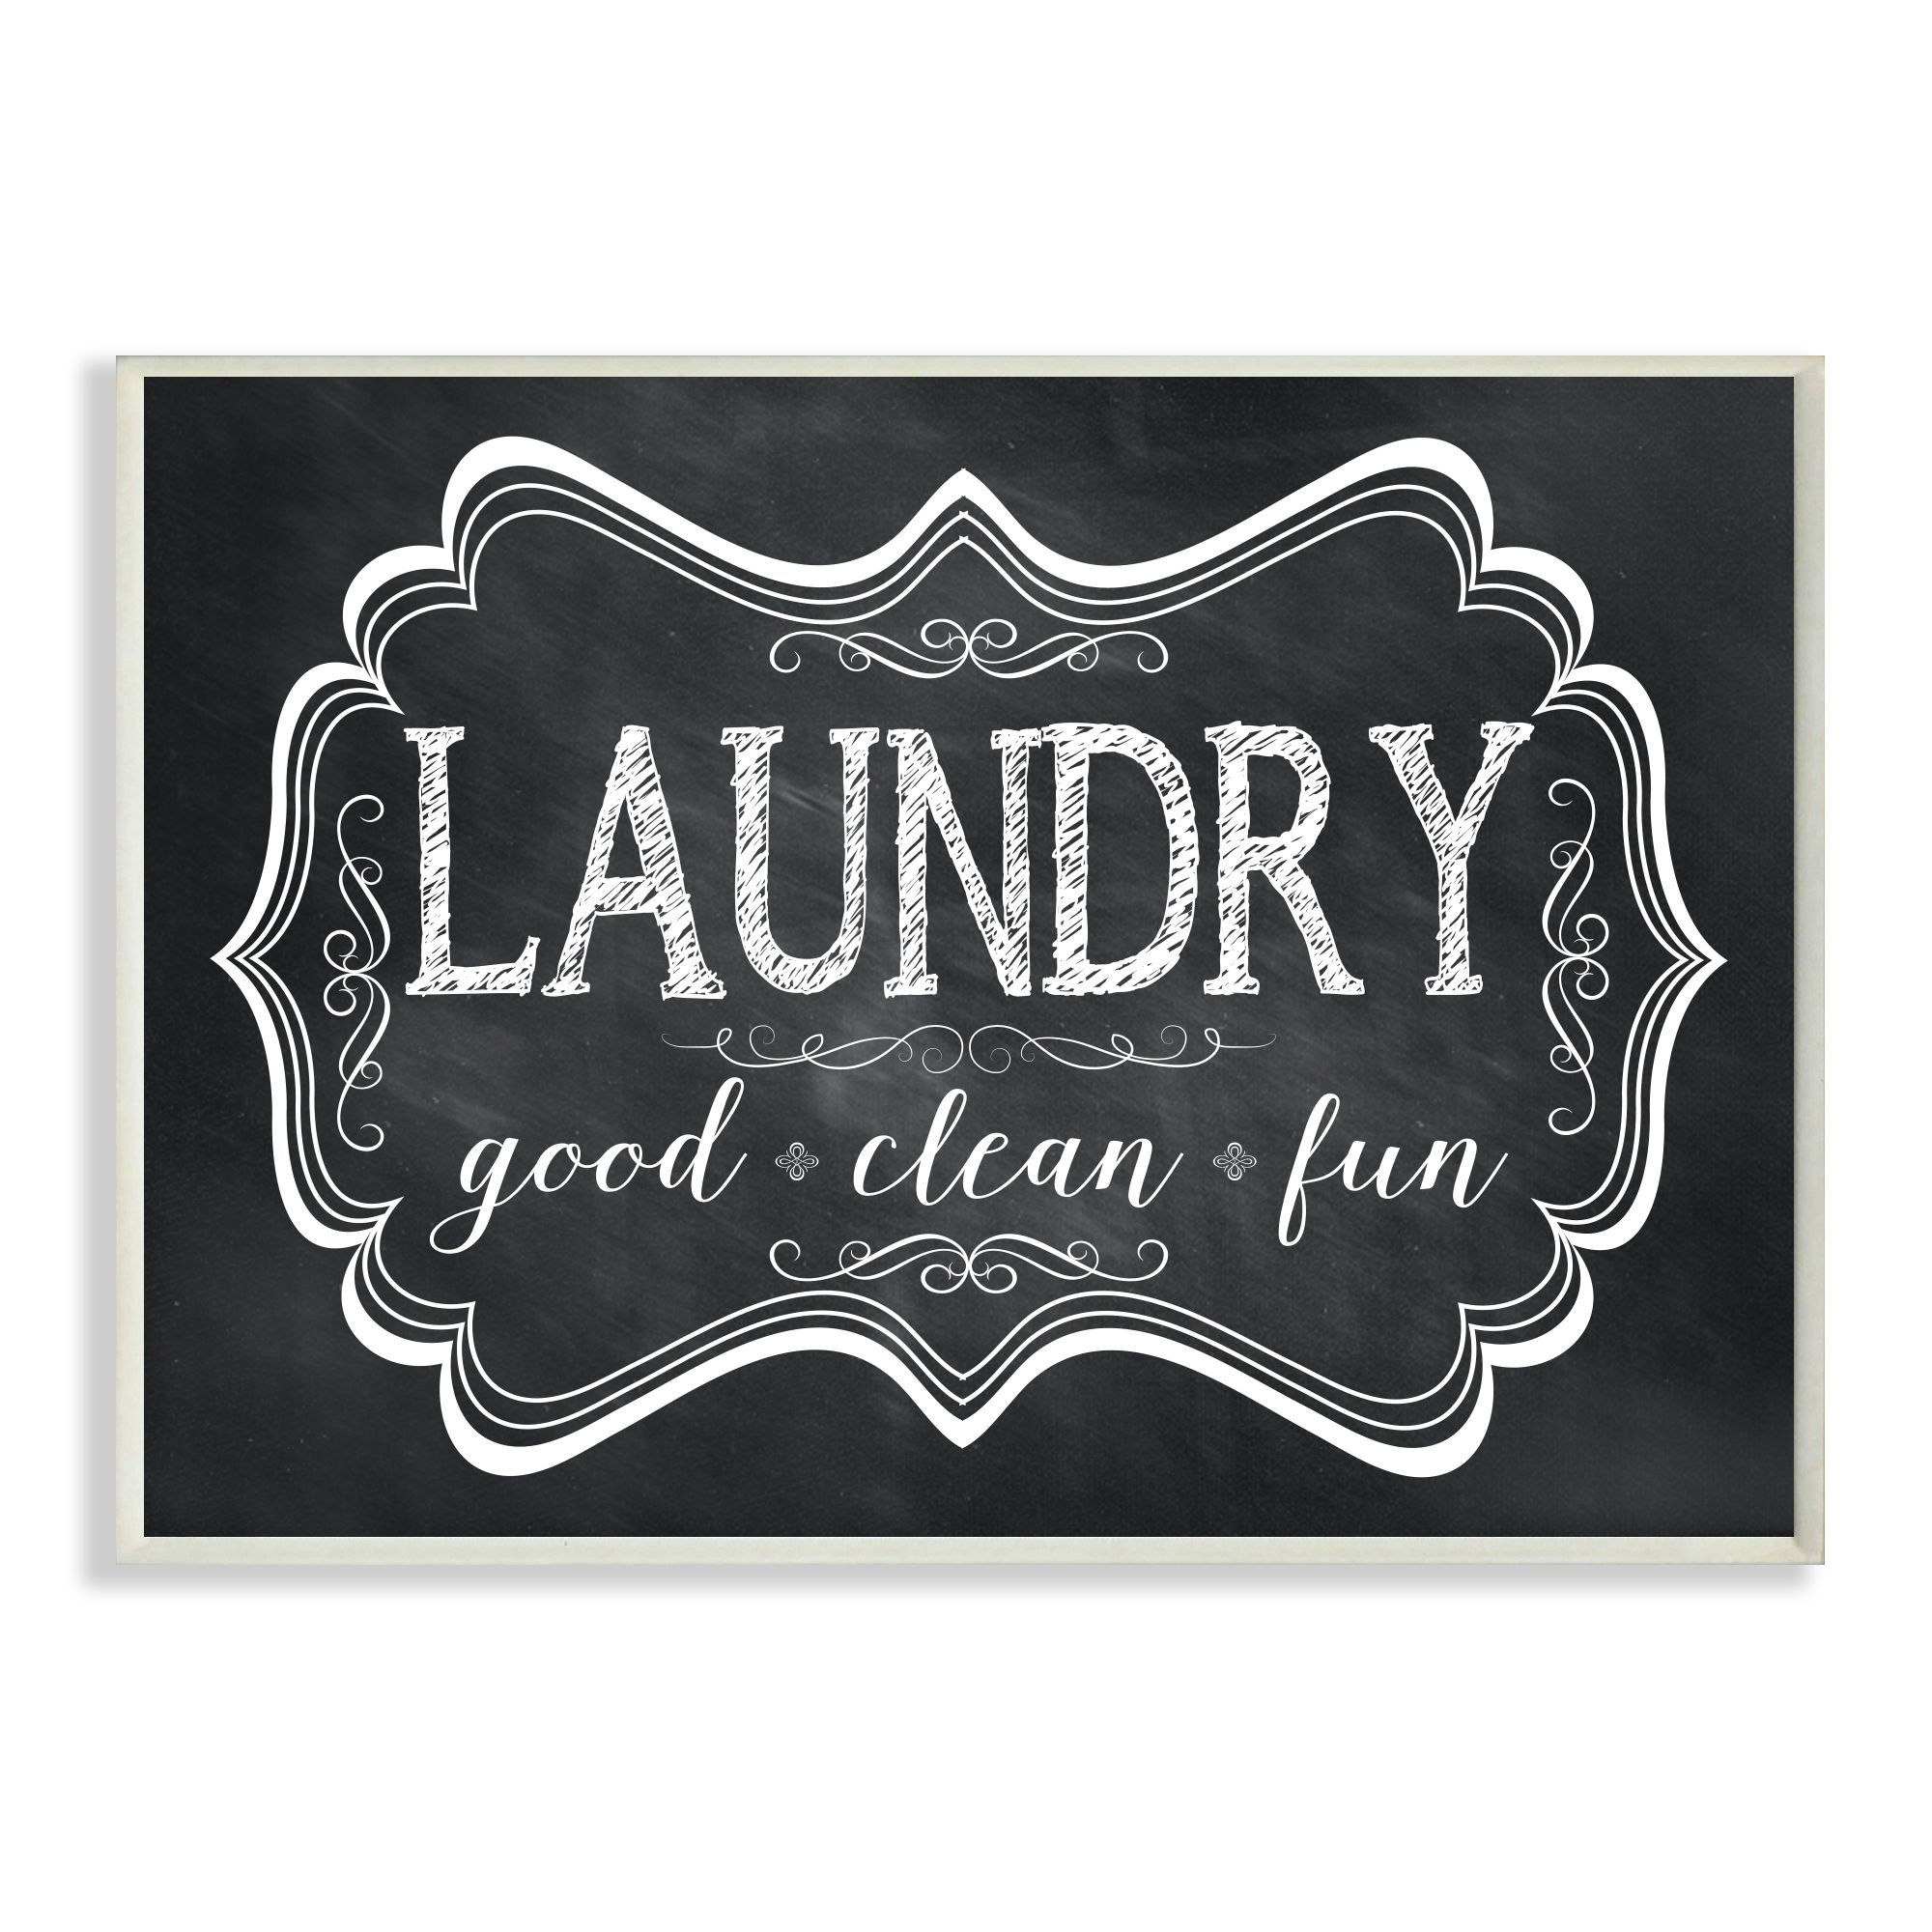 Laundry Wall Plaque Laundry Good Clean Fun' Chalkboardlook Wall Plaque Artstupell